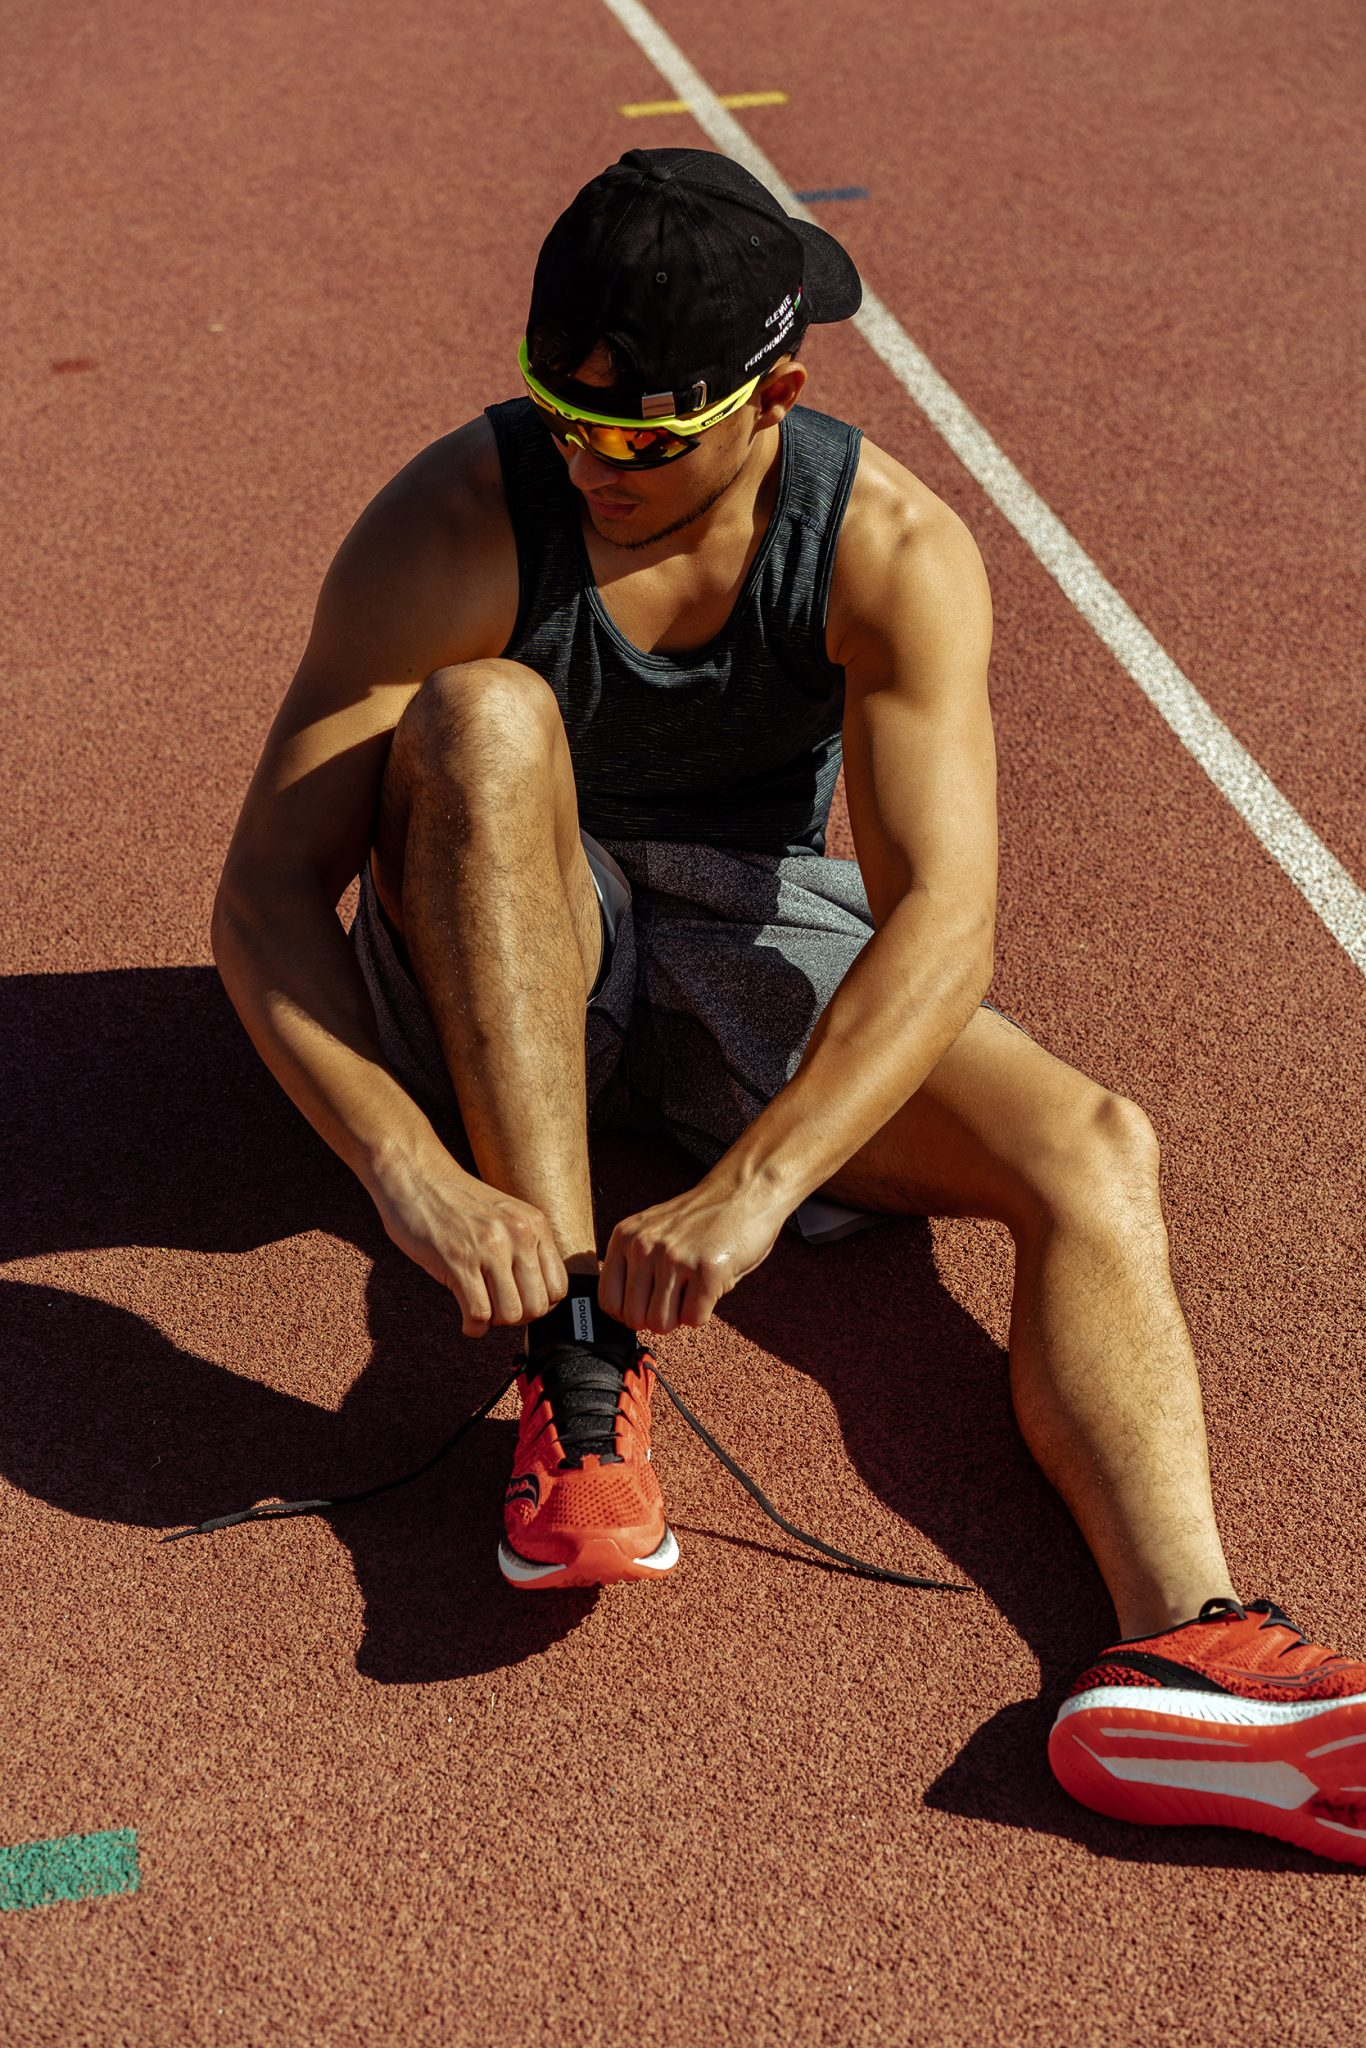 Triathlon made Matteo Guidicelli realize the one constant in his life: fitness